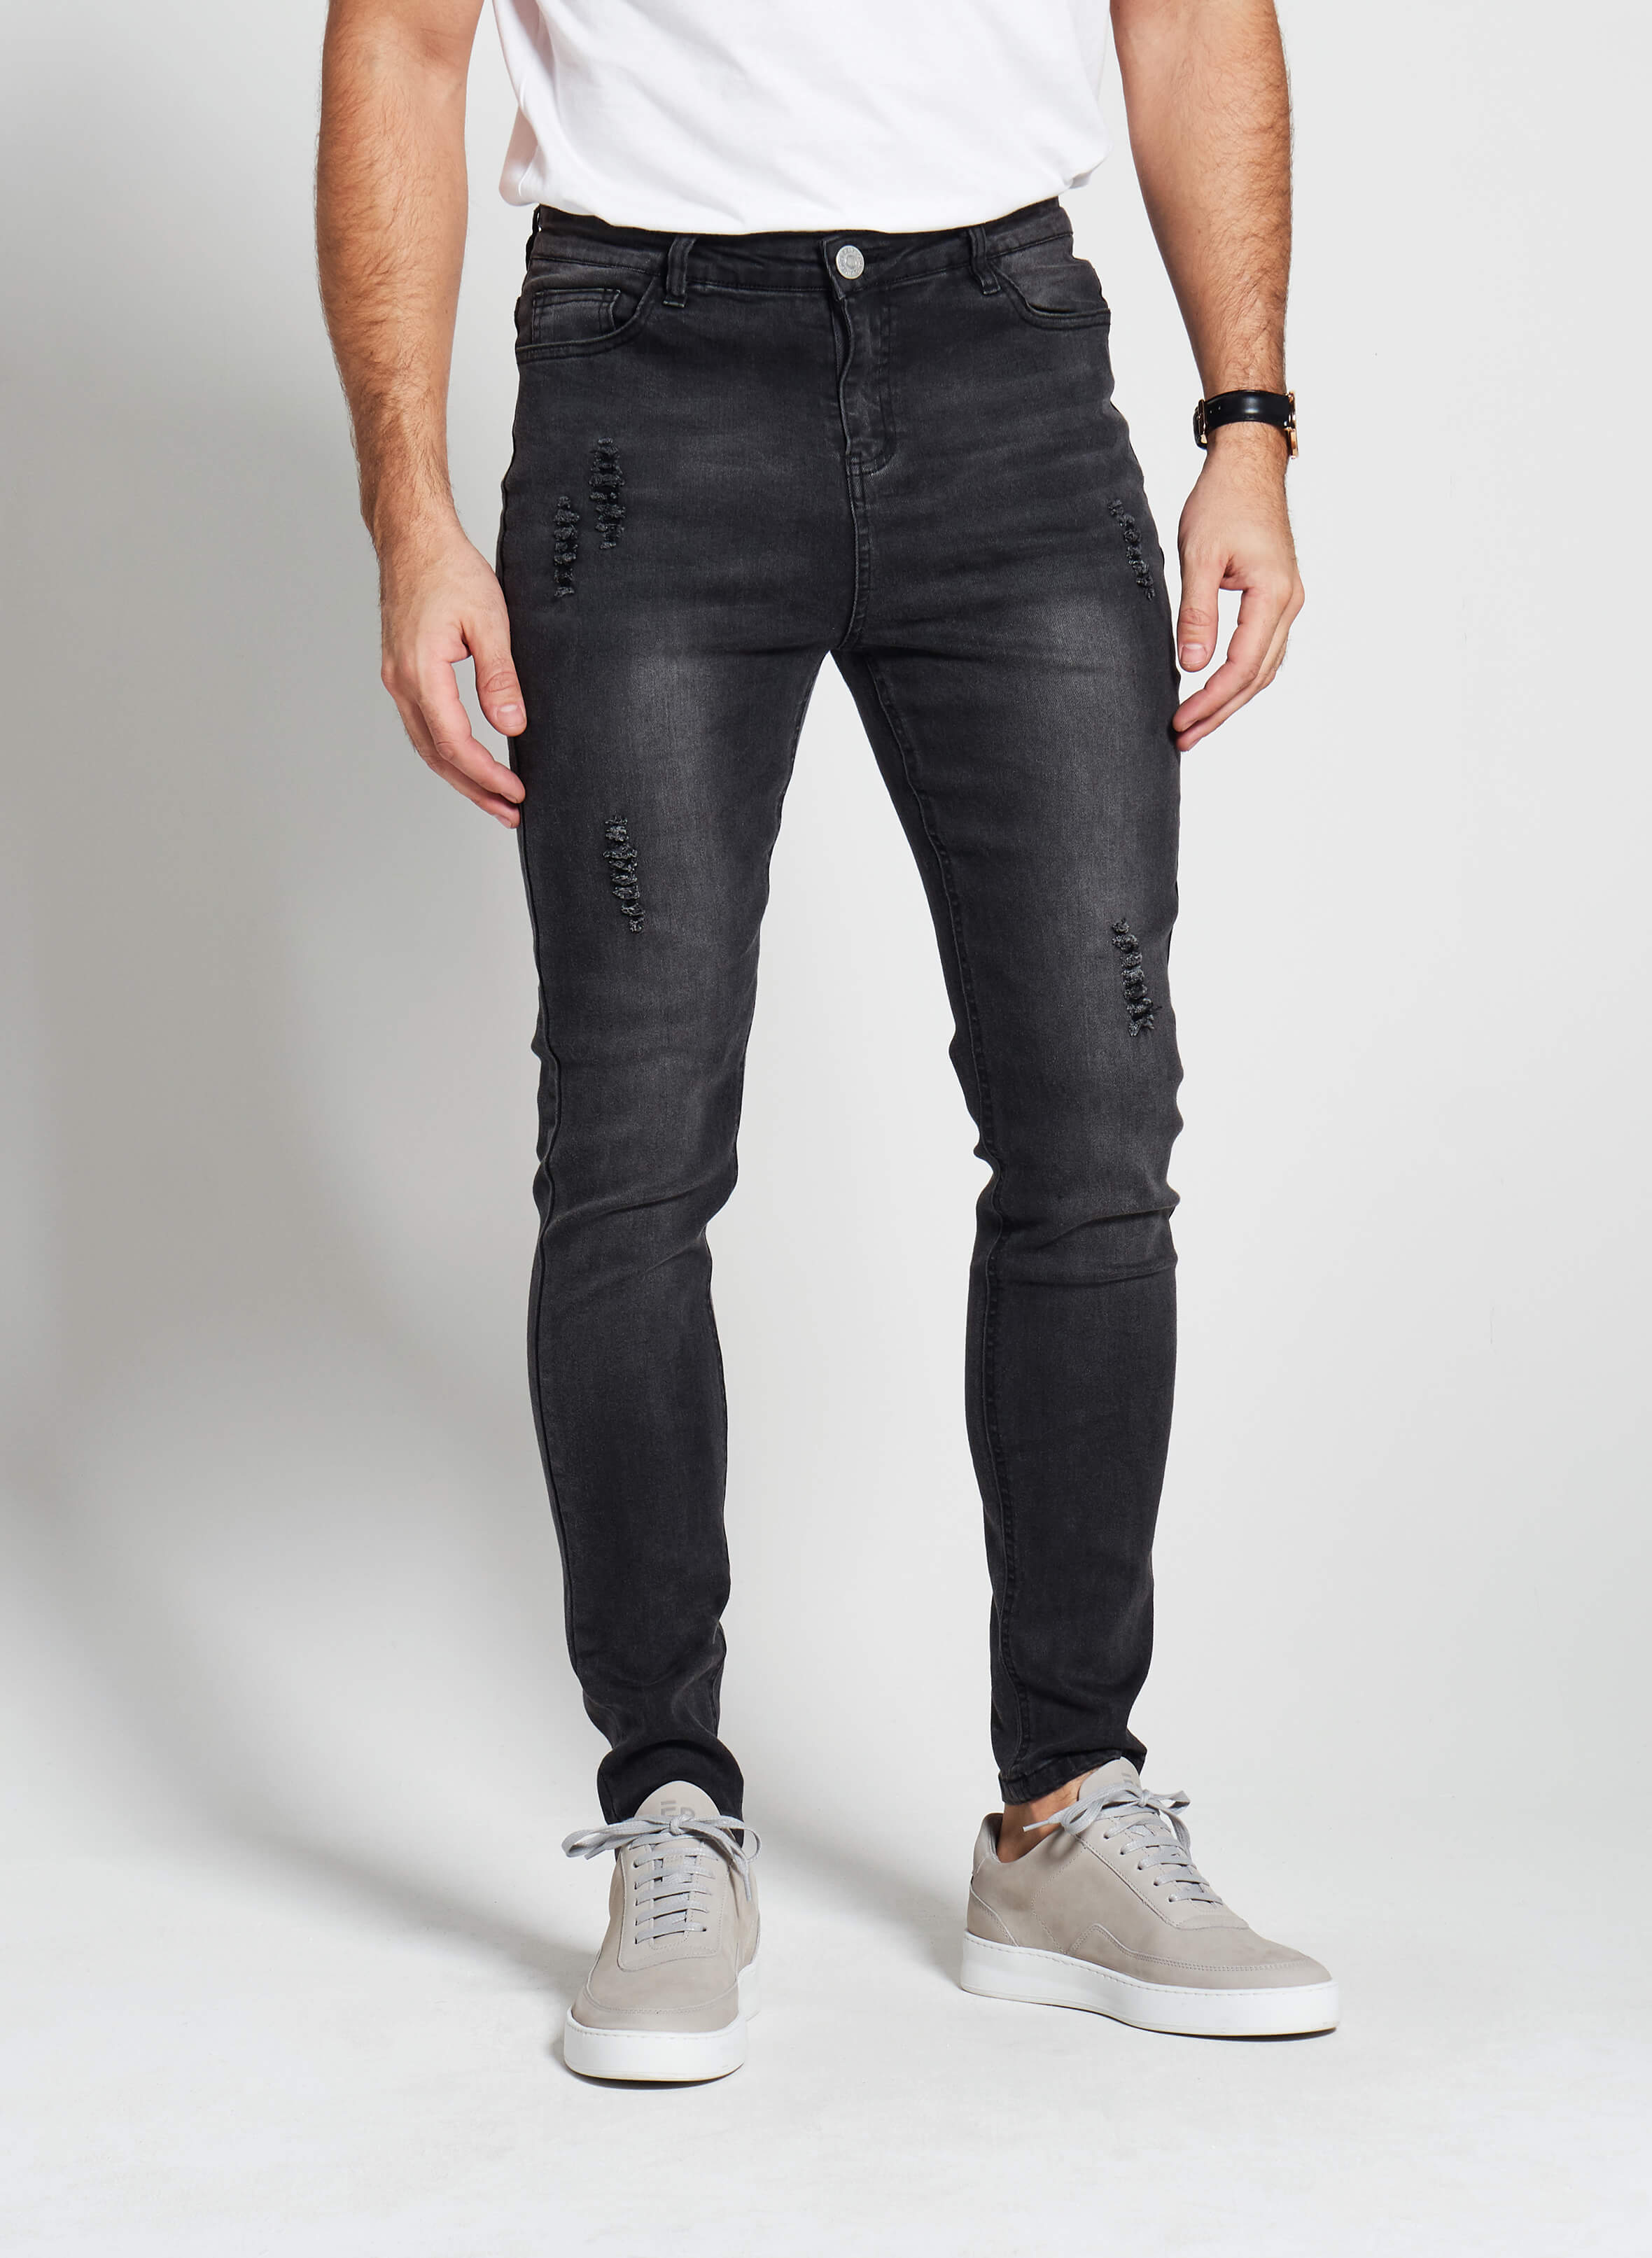 Denim Only® Slim Fit Jeans - Distressed Washed Black - Slim Fit